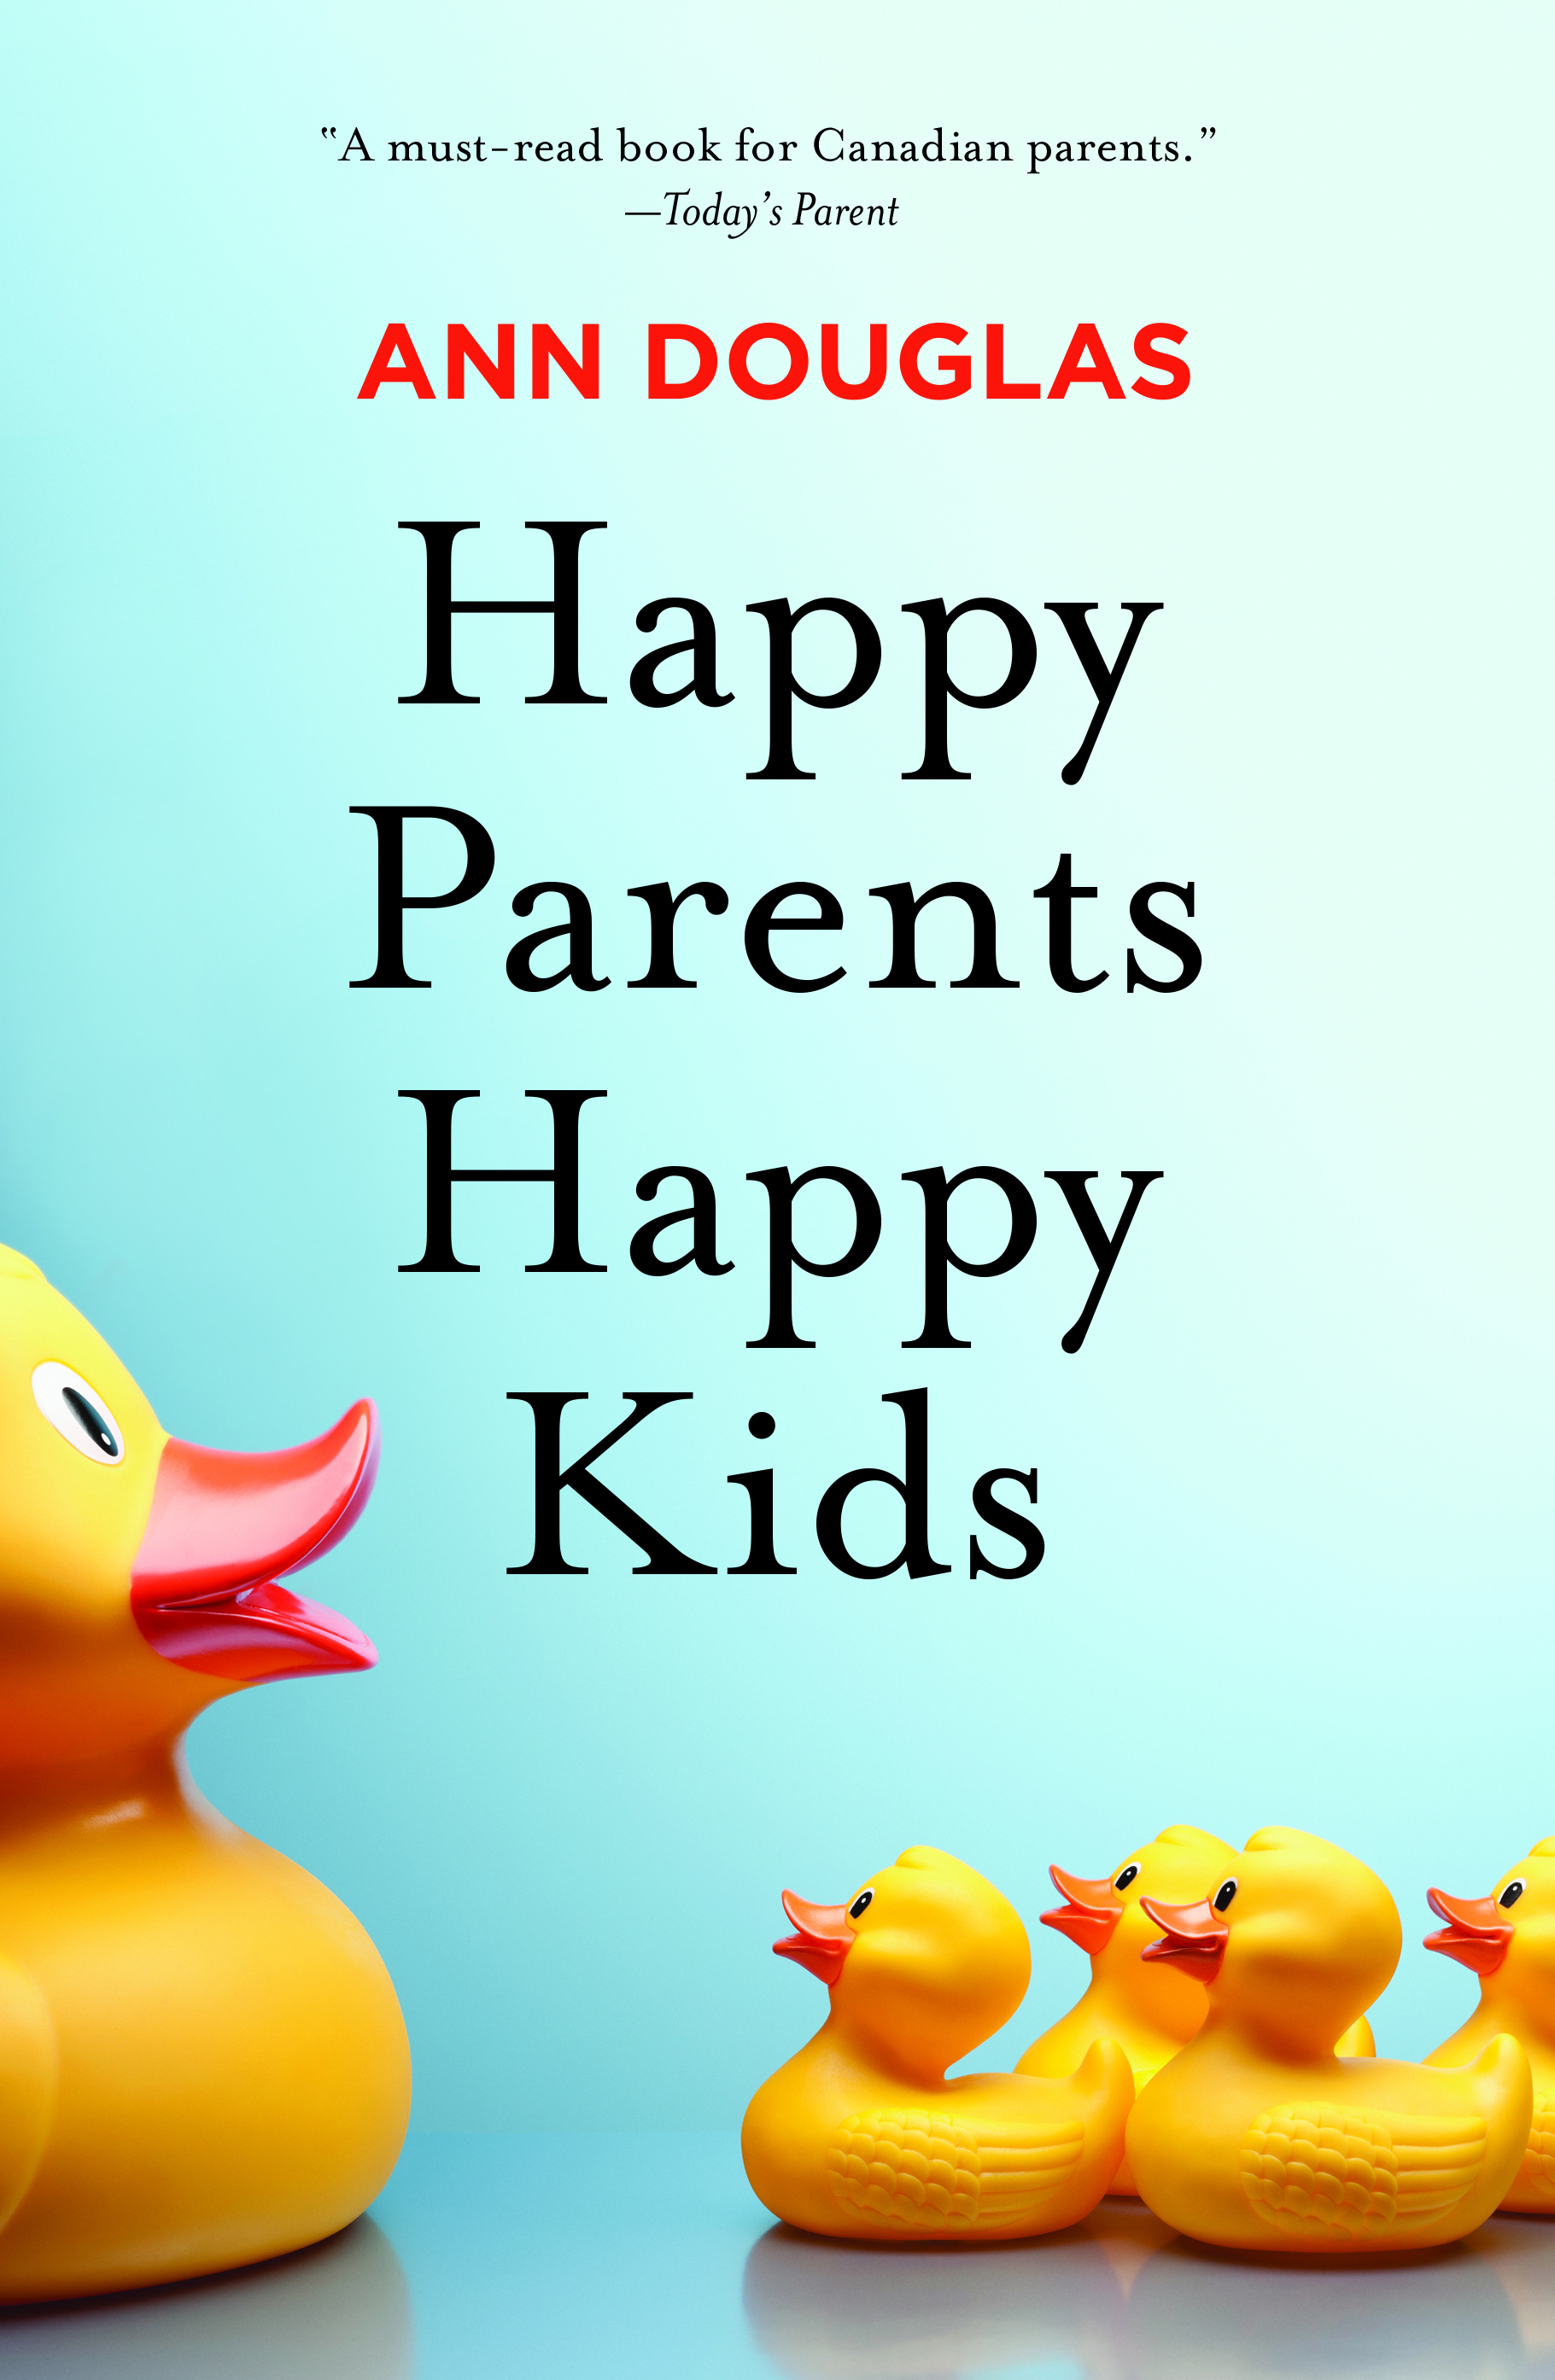 Happy Parents Happy Kids by Ann Douglas (HarperCollins Canada, February 2019).